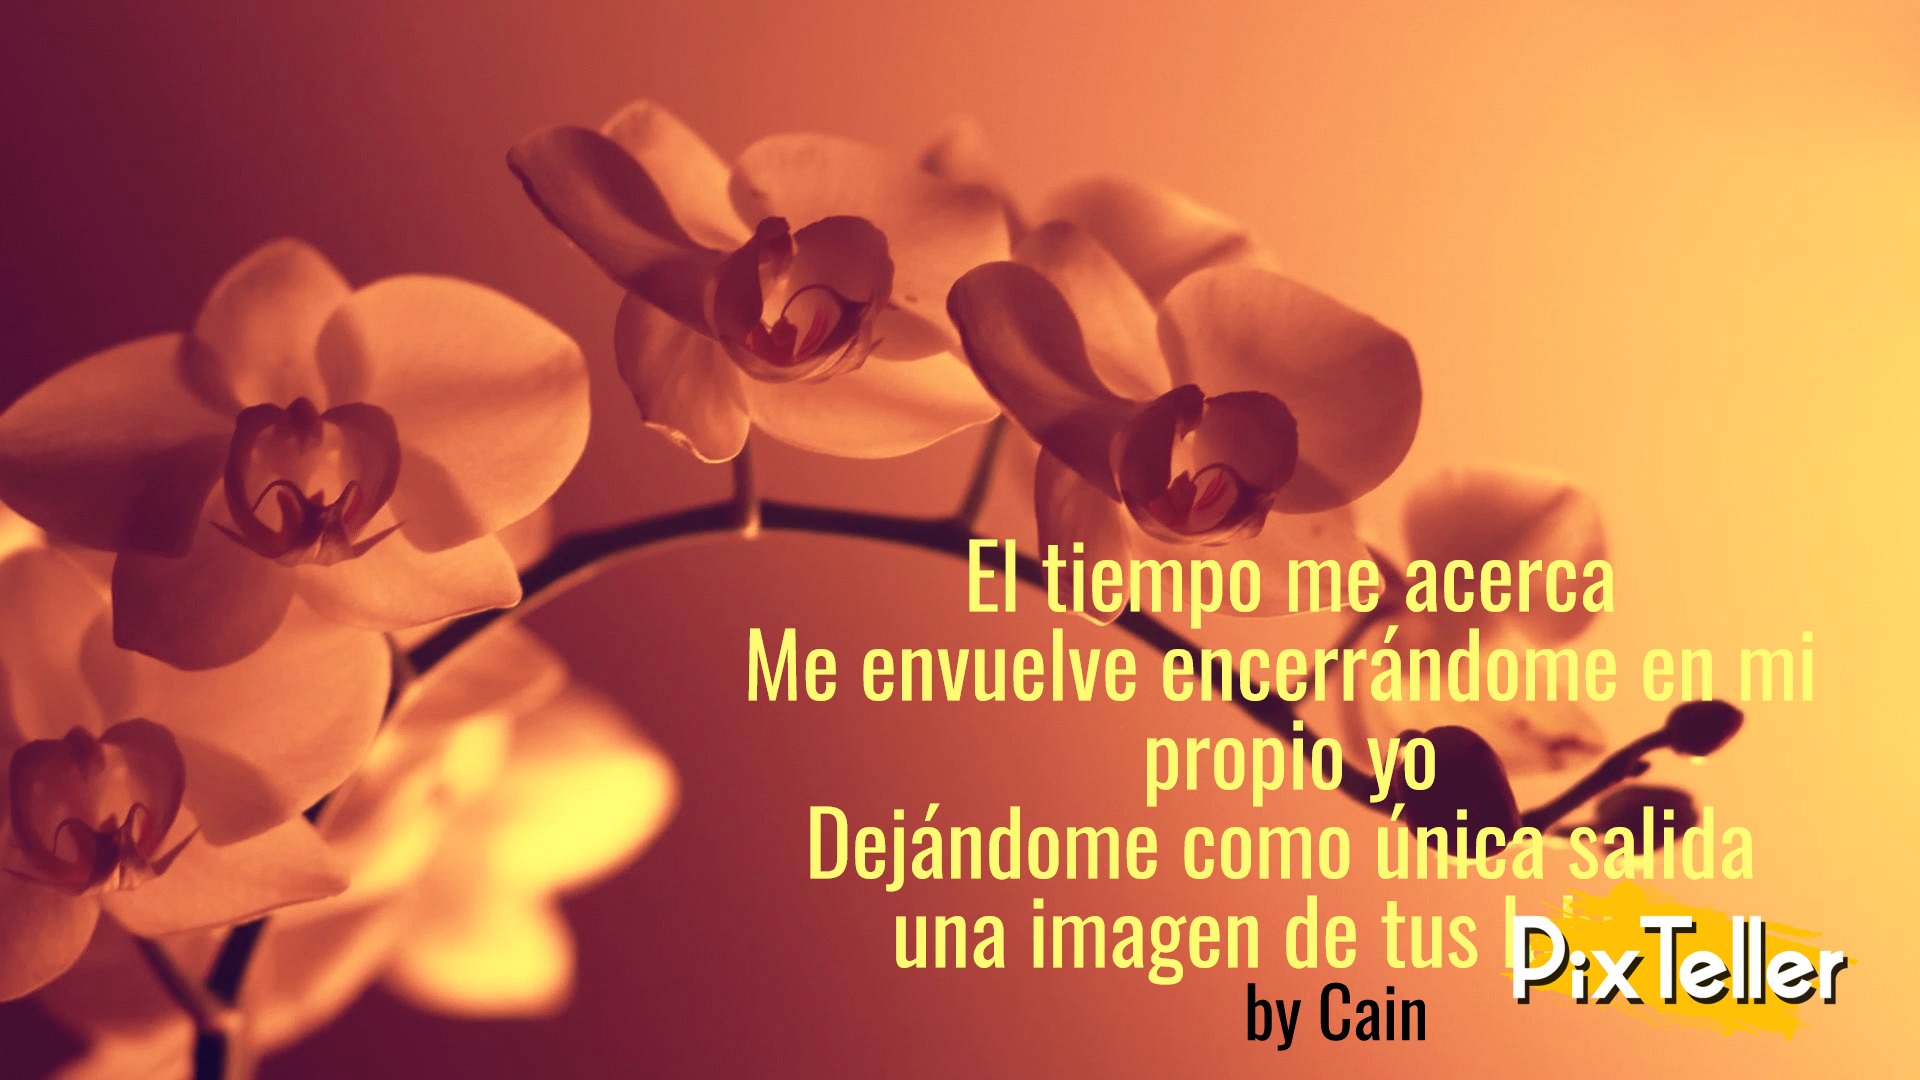 Poema Flores Frases Amor Image Customize Download It For Free